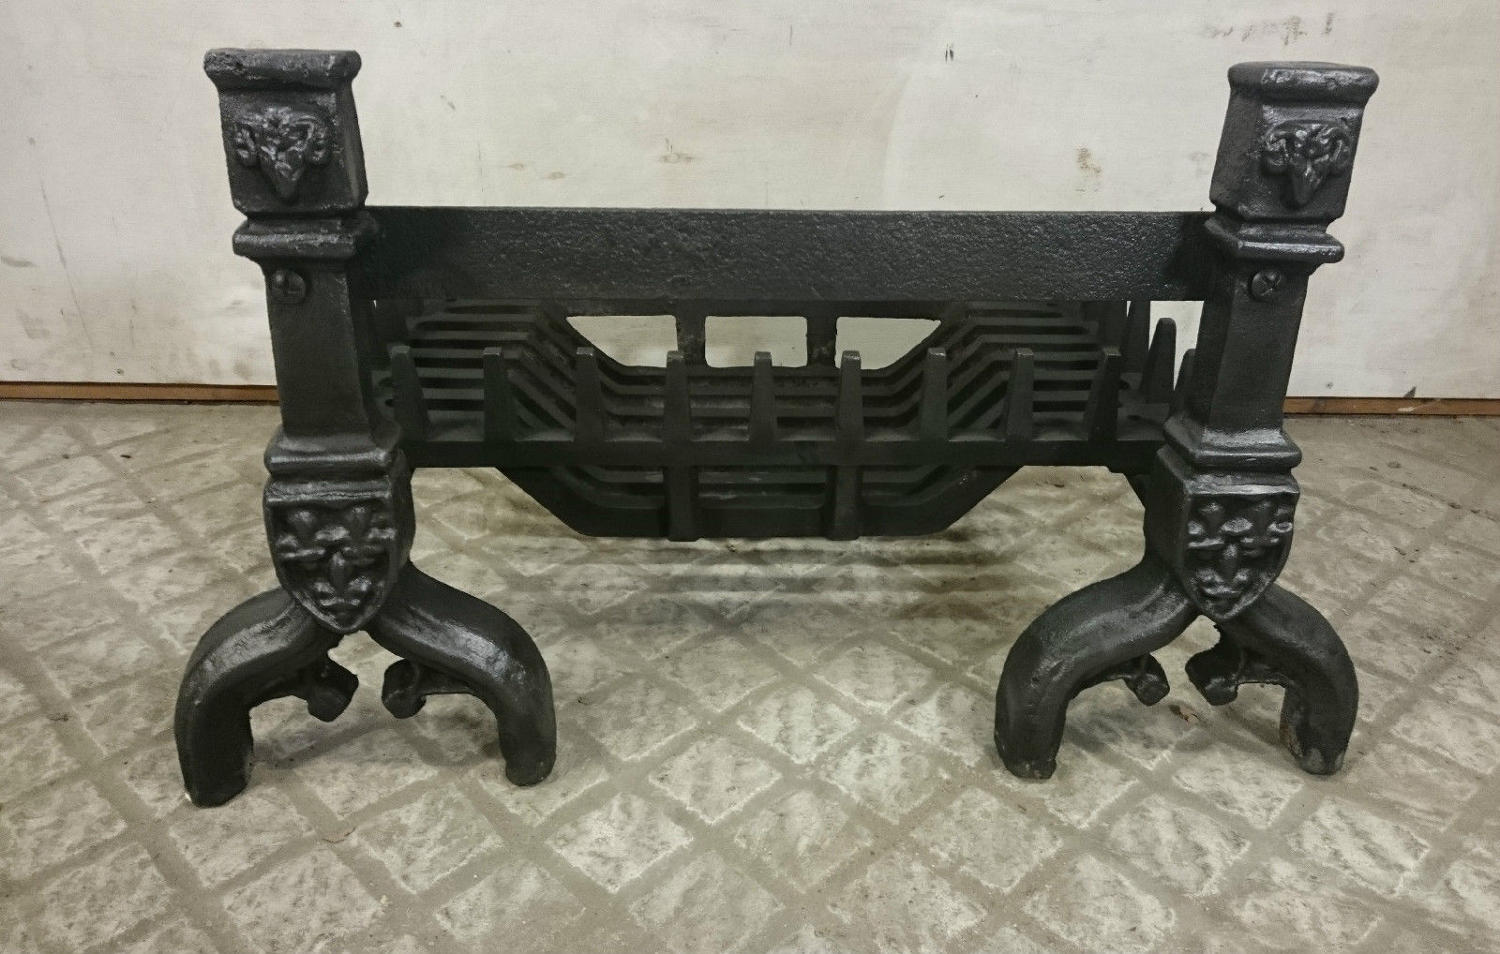 FB0013 A Reclaimed Cast Iron Swans Nest Fire Basket with Fire Dogs